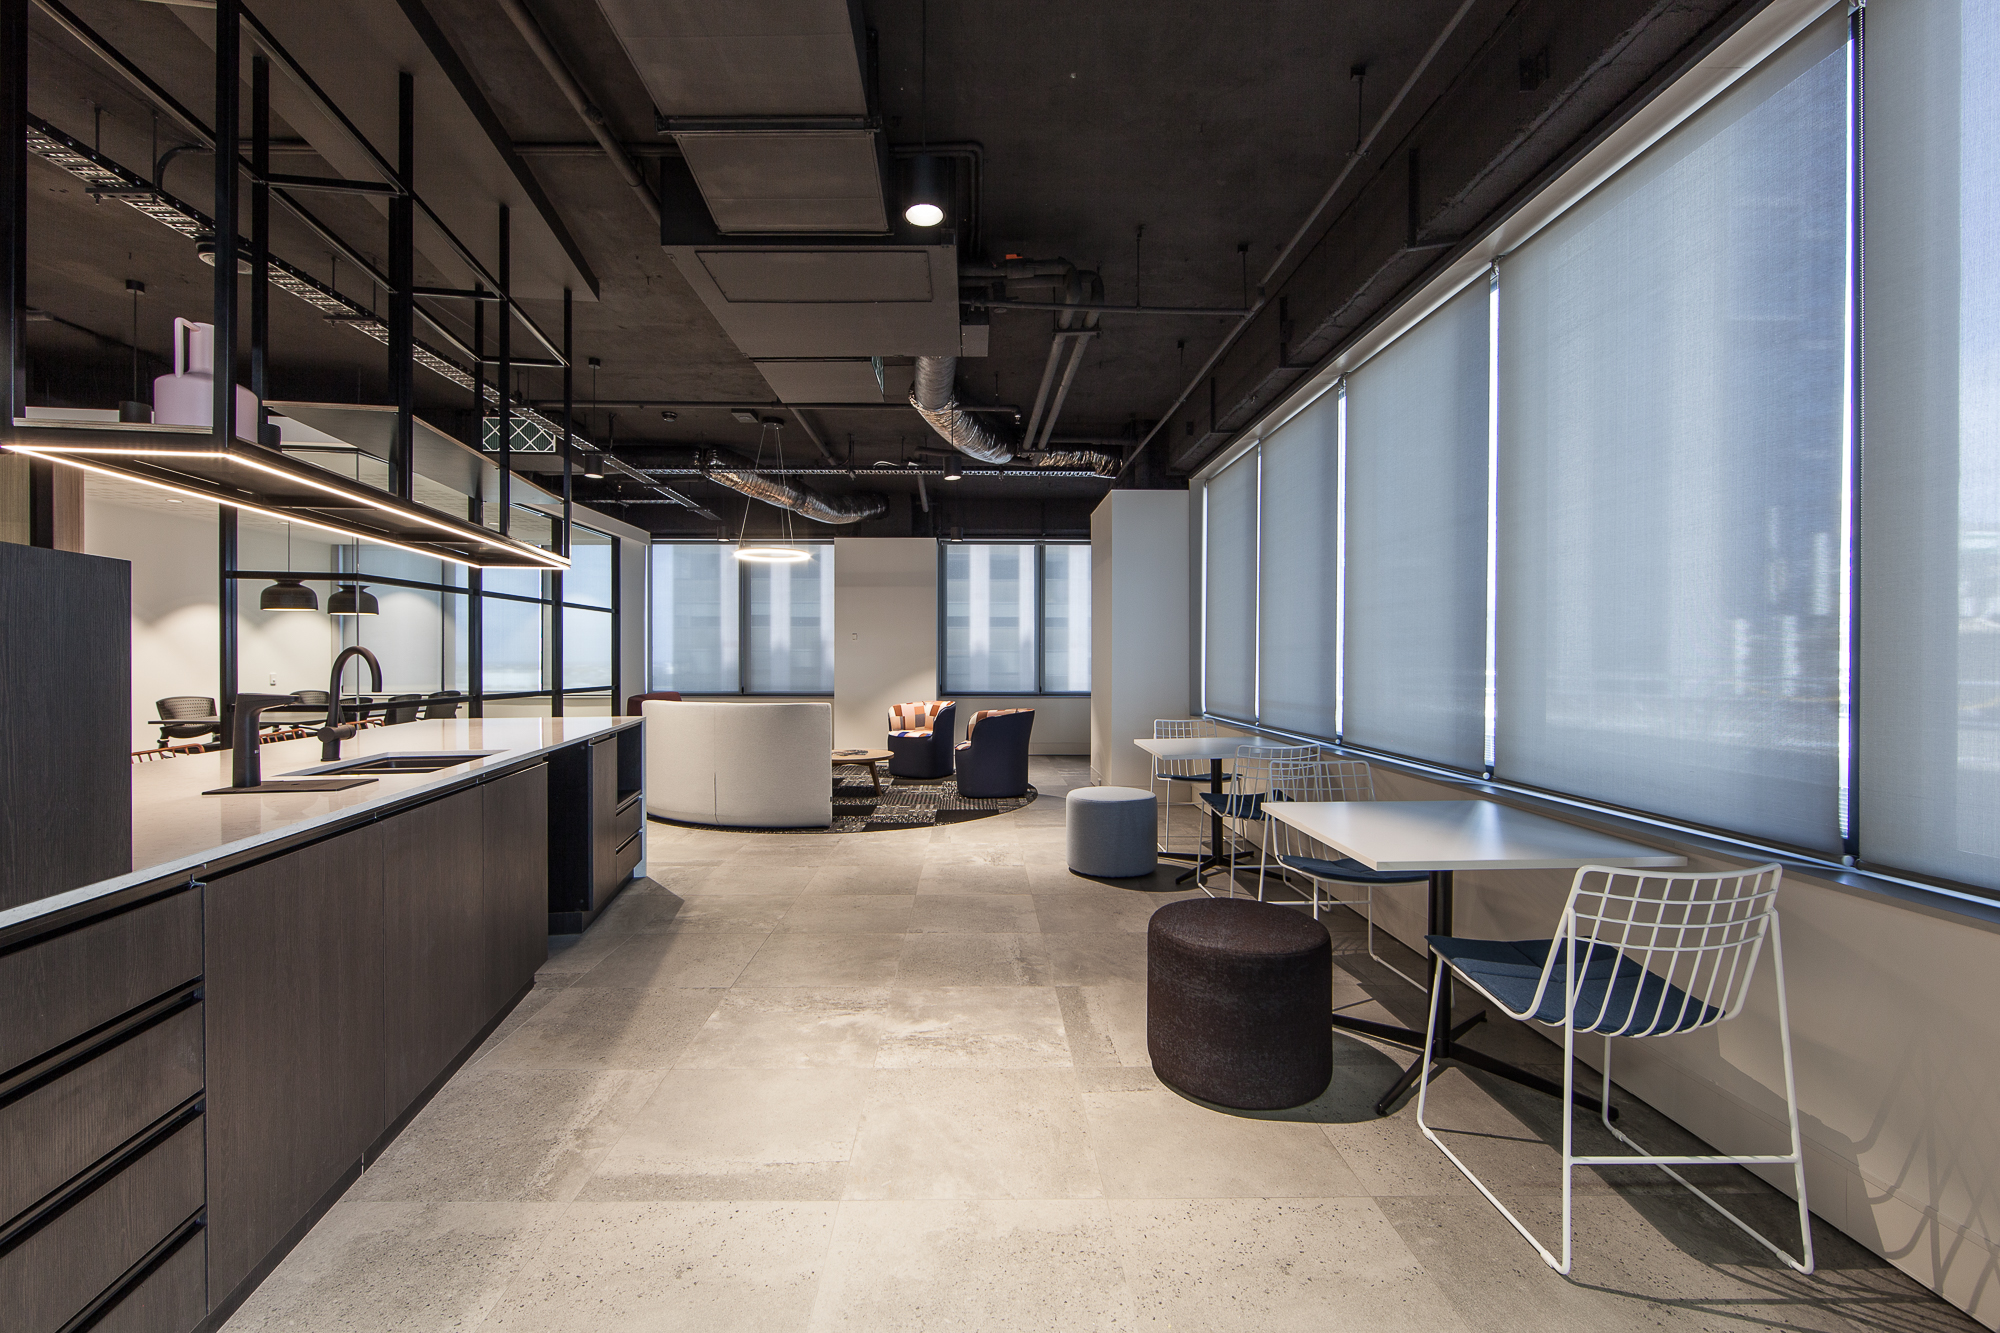 Office kitchen and dining tables